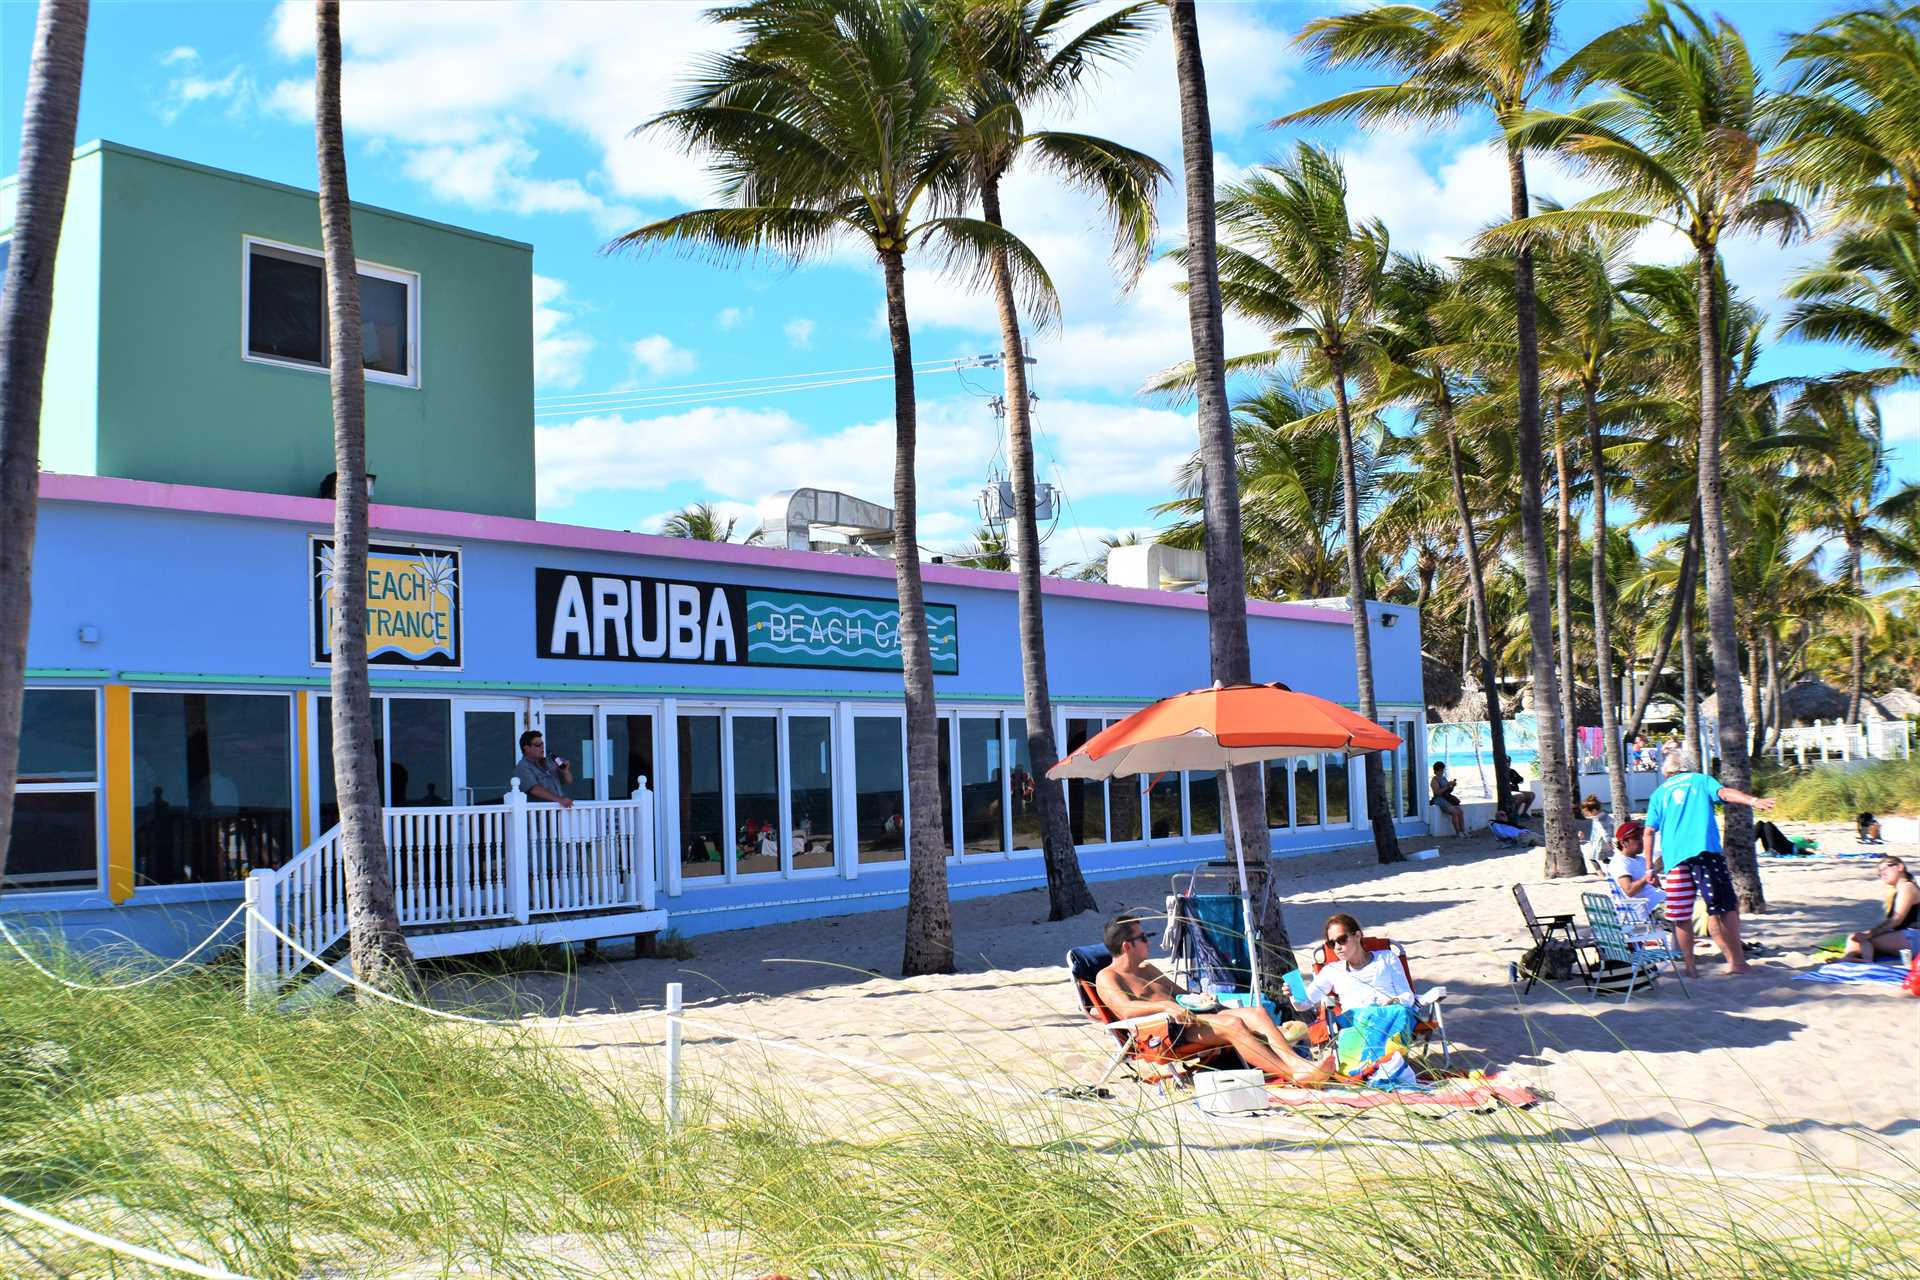 Remember to stop by the world famous Aruba Beach Cafe.